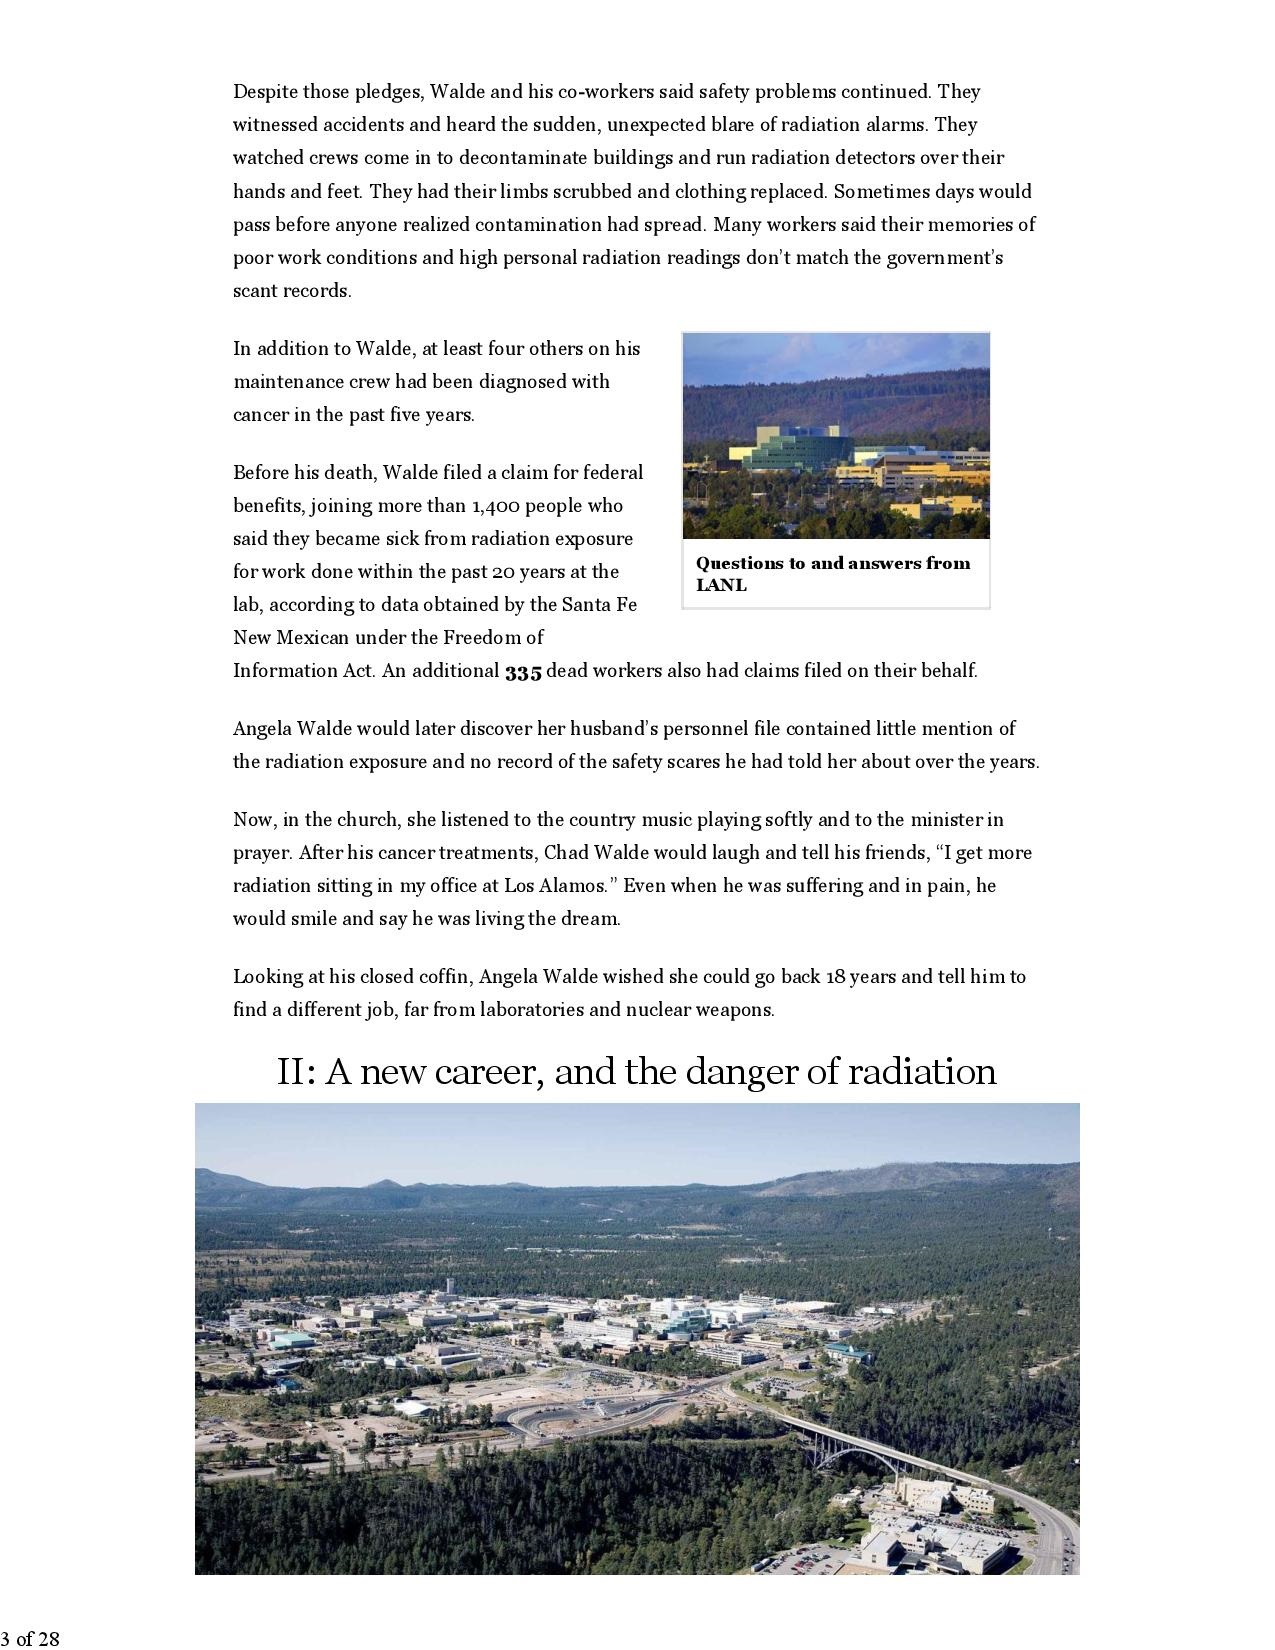 The life and death of Chad Walde - Local News-page-003